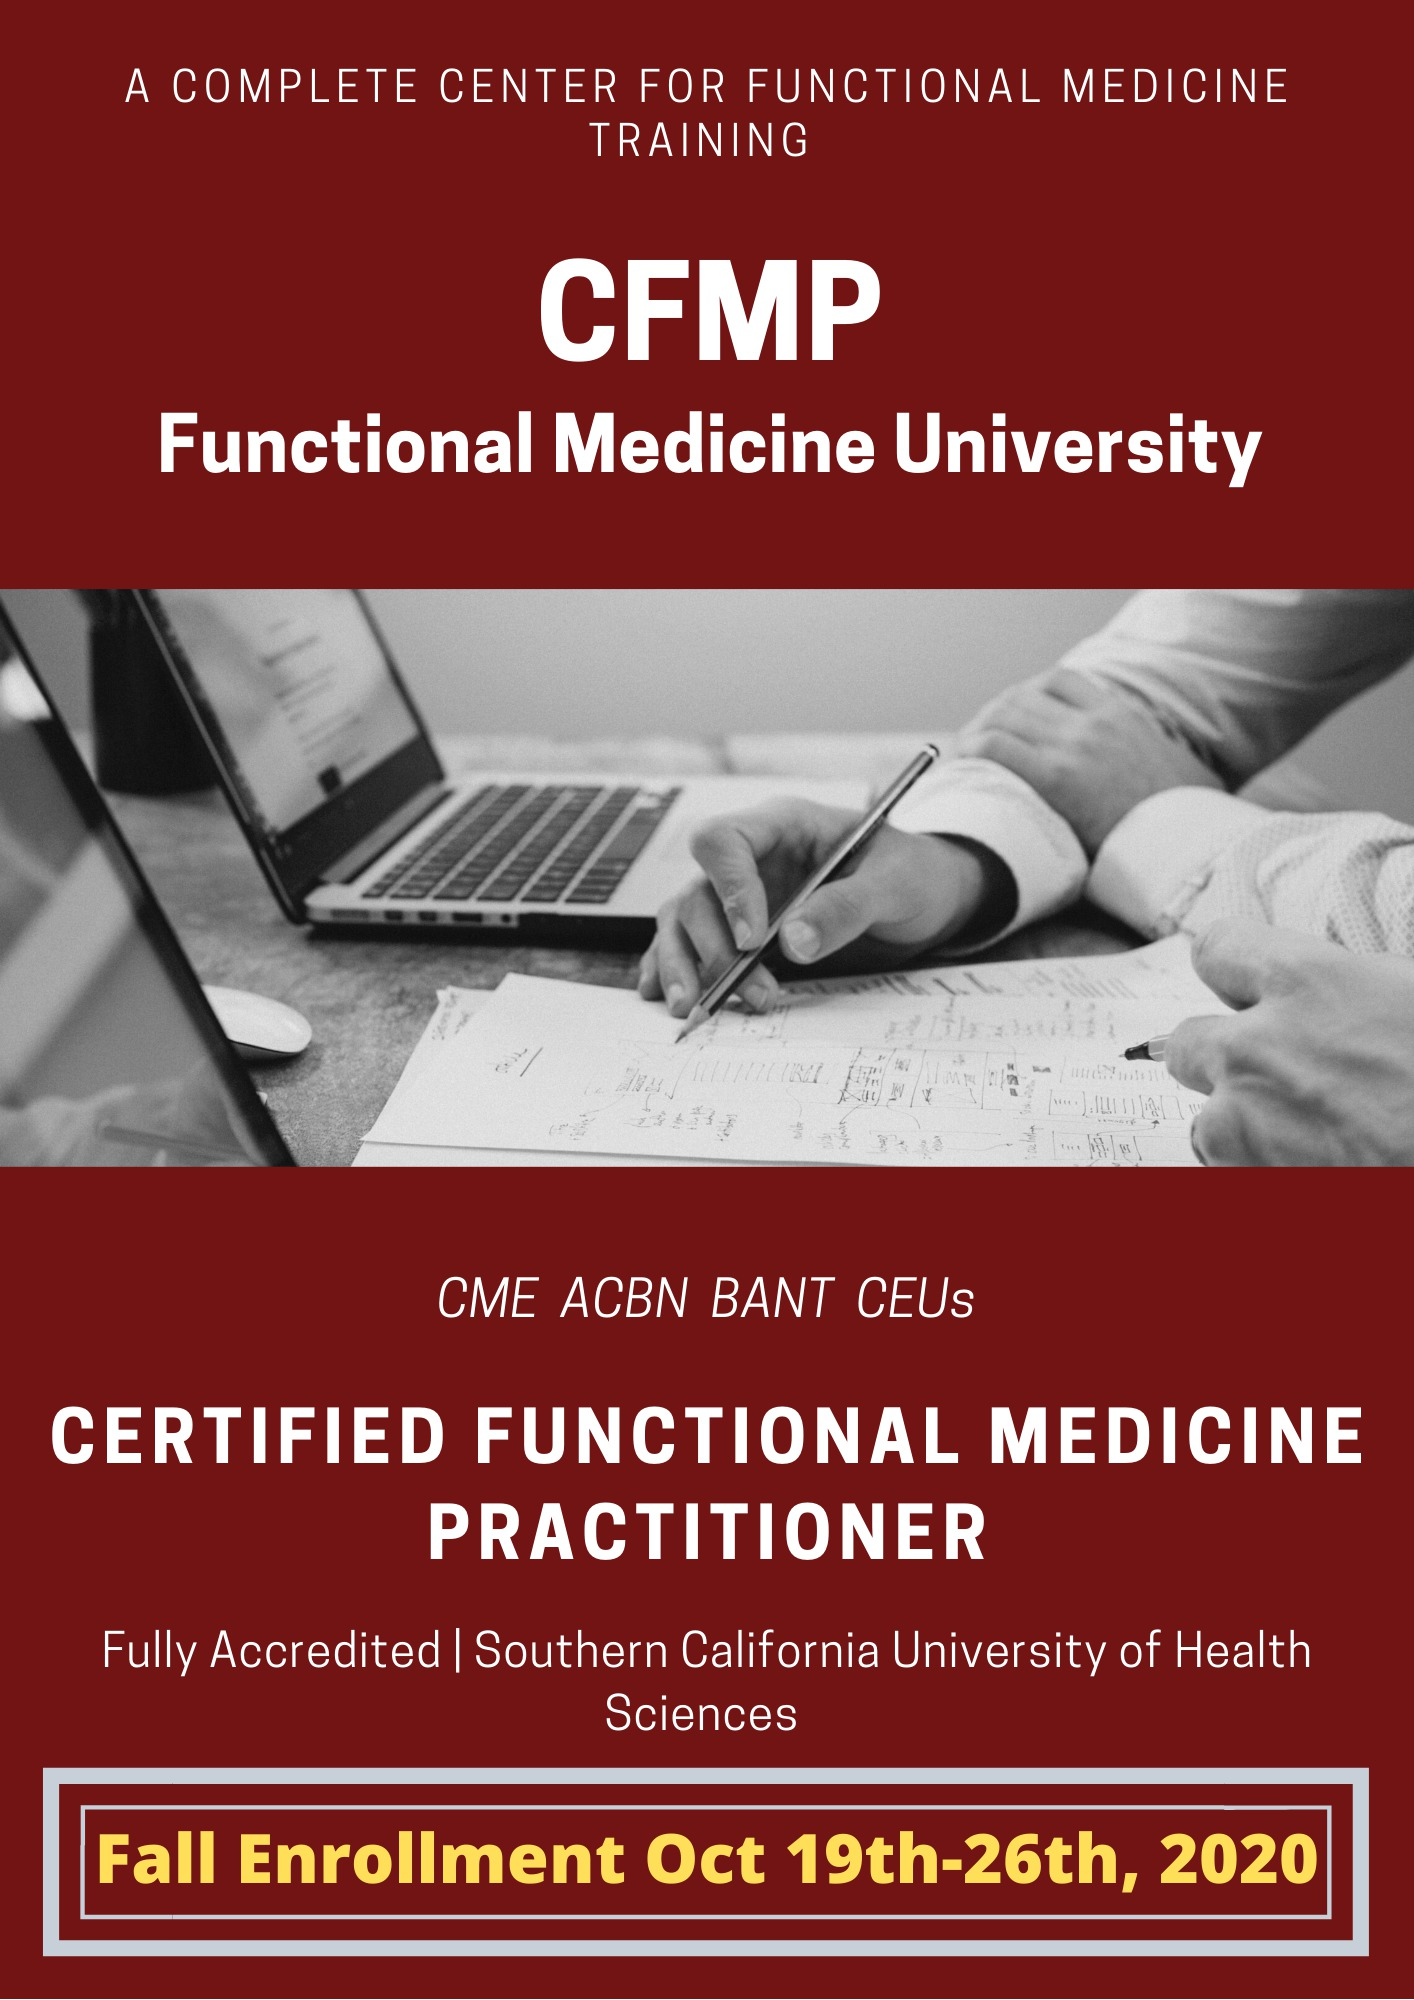 functional medicine university fall enrollment autumn 2020 october